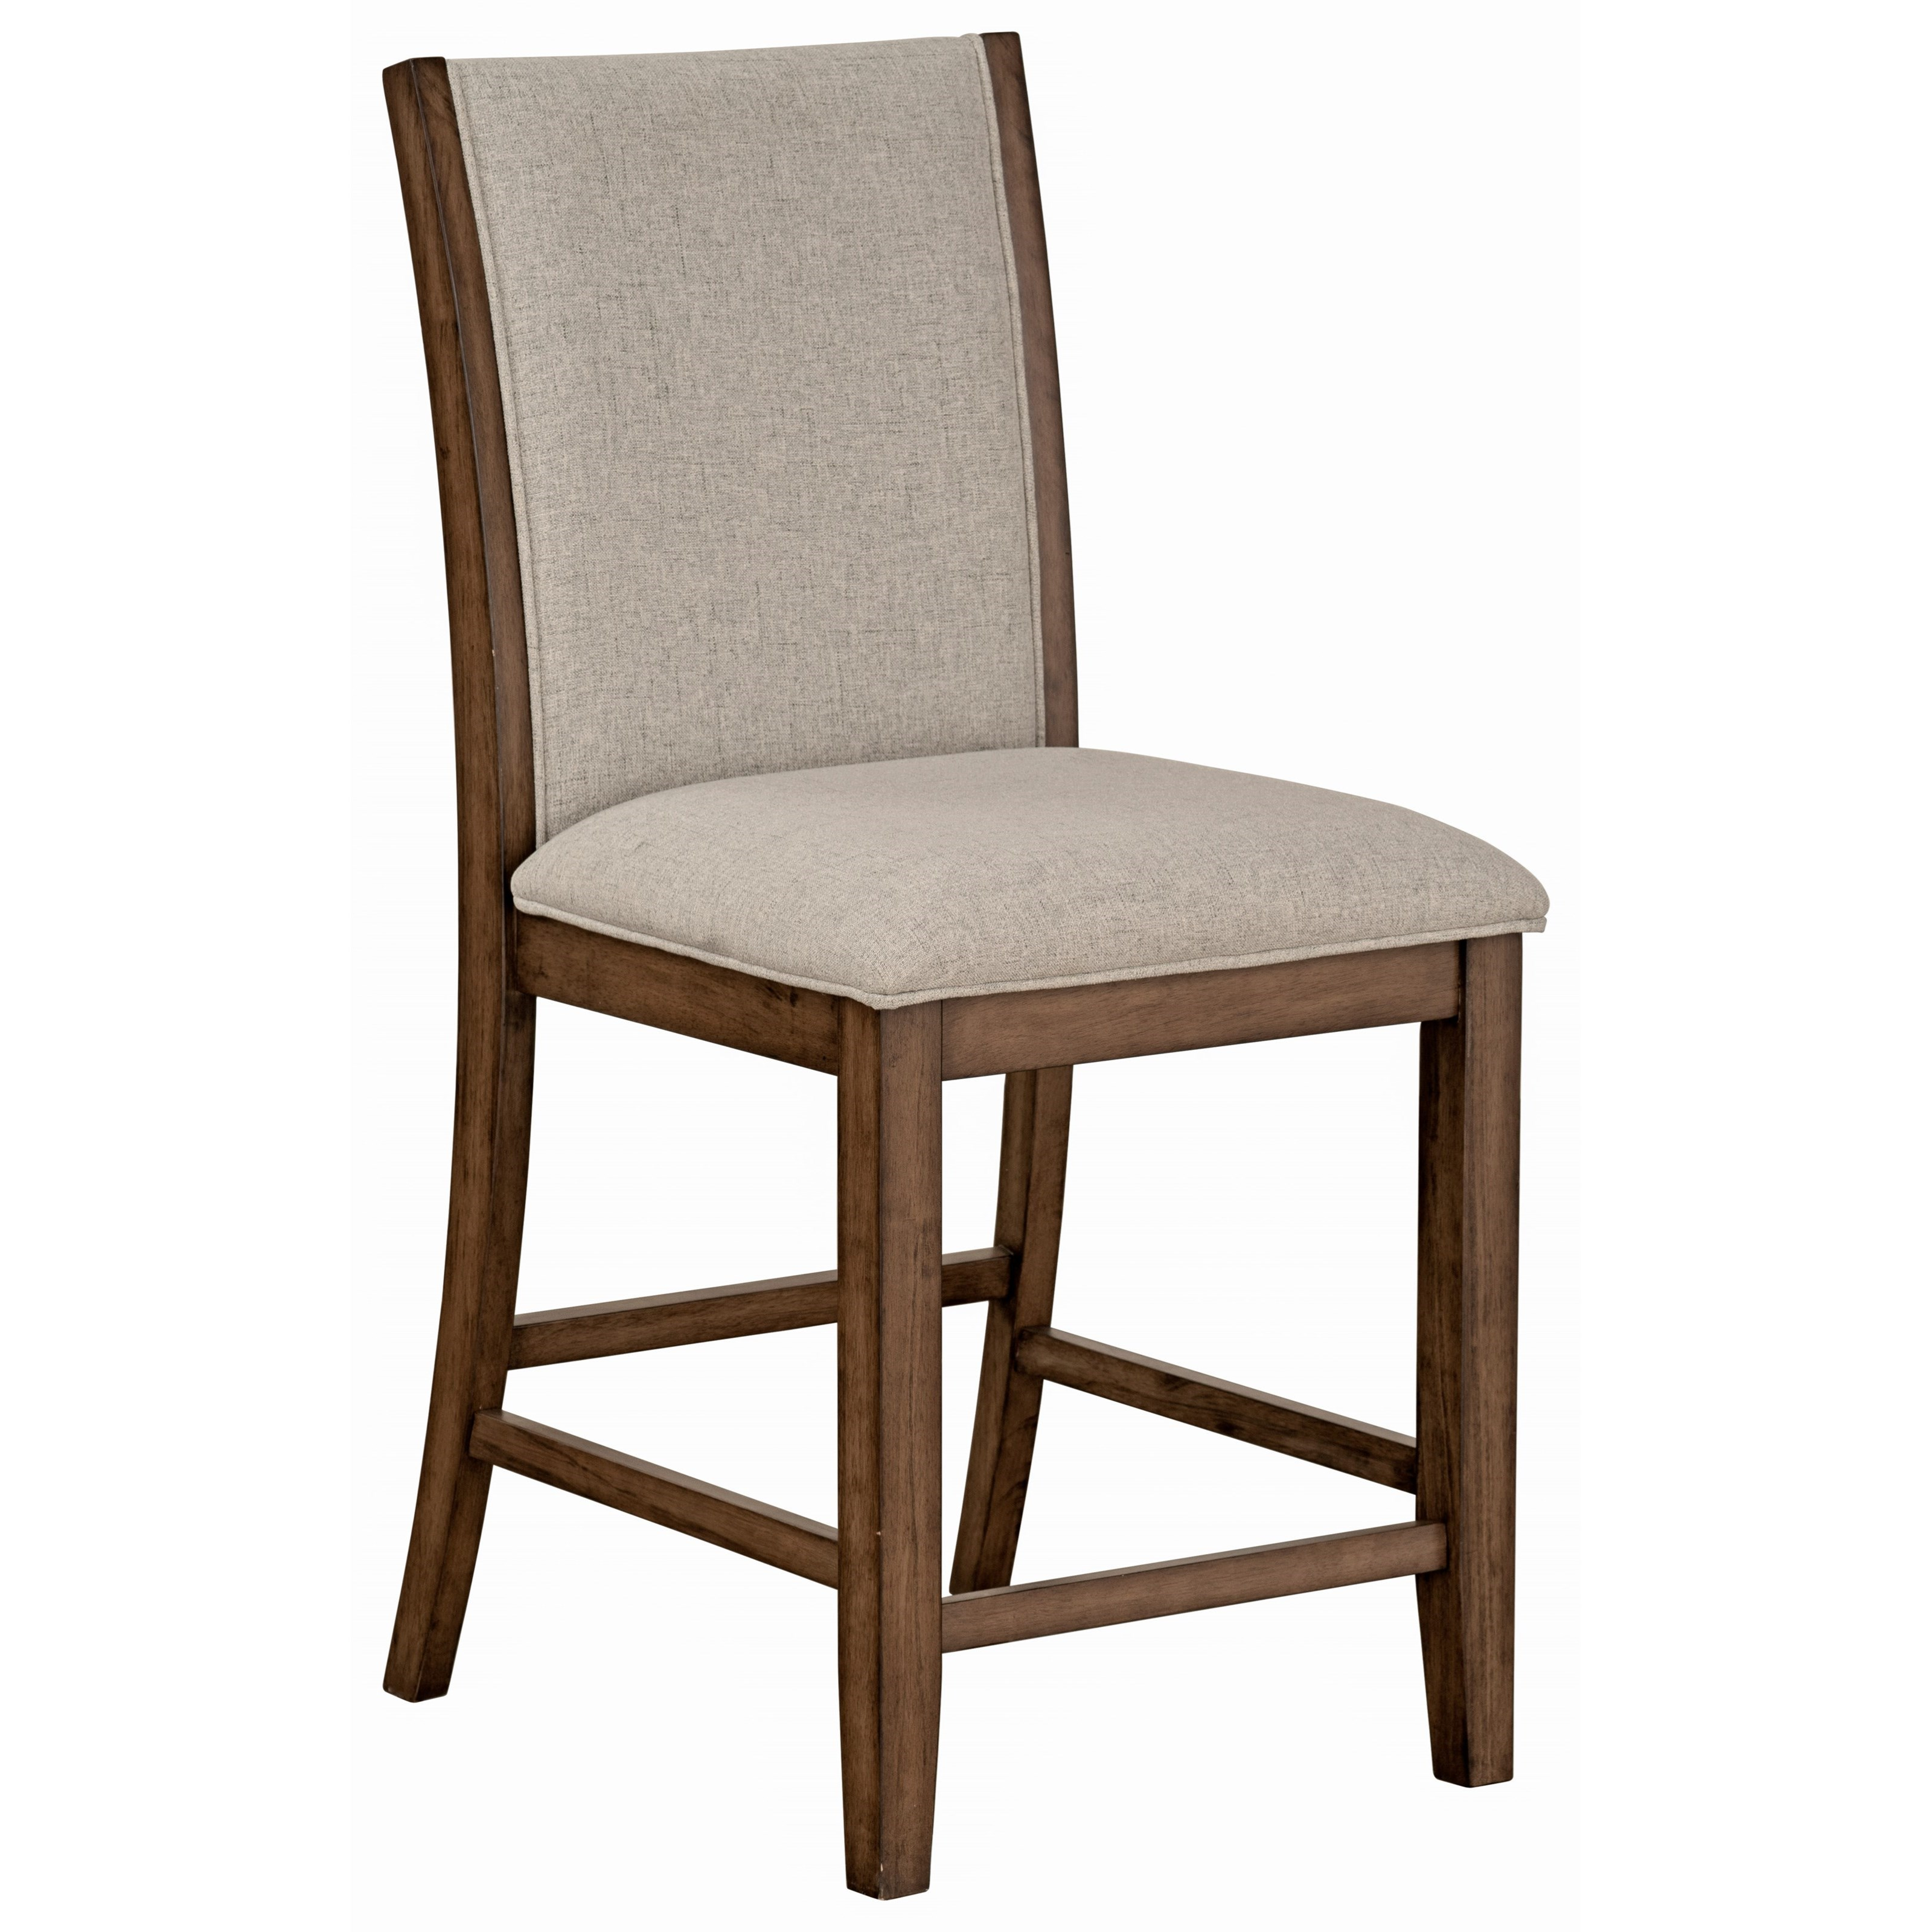 Standard Furniture Zayden Brown Contemporary Counter Height Side Chair With Upholstered Seat Adcock Furniture Dining Side Chairs